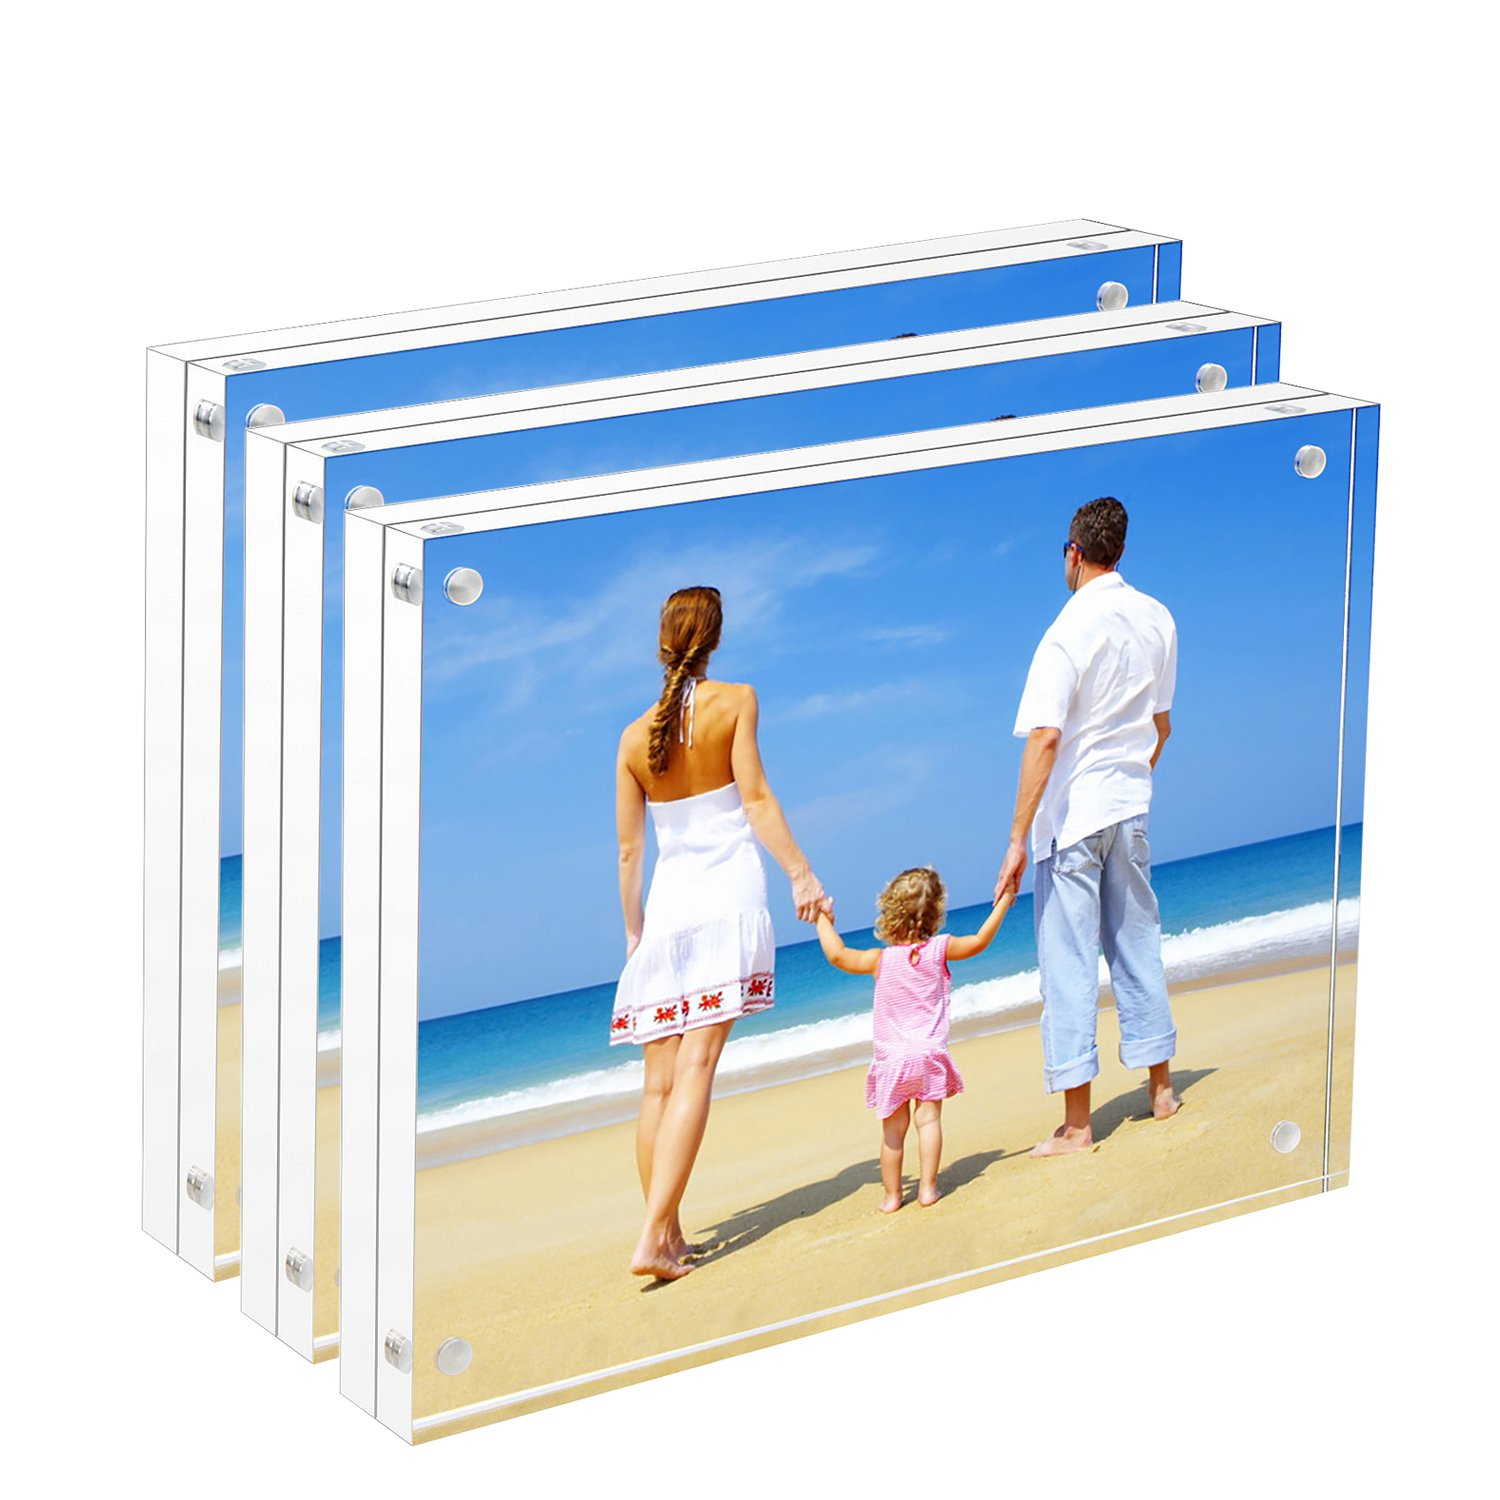 NIUBEE 8x10 Acrylic Frame 3 Pack, Tabletop Double Sided Magnetic Picture  Frame with Retail Gift Box